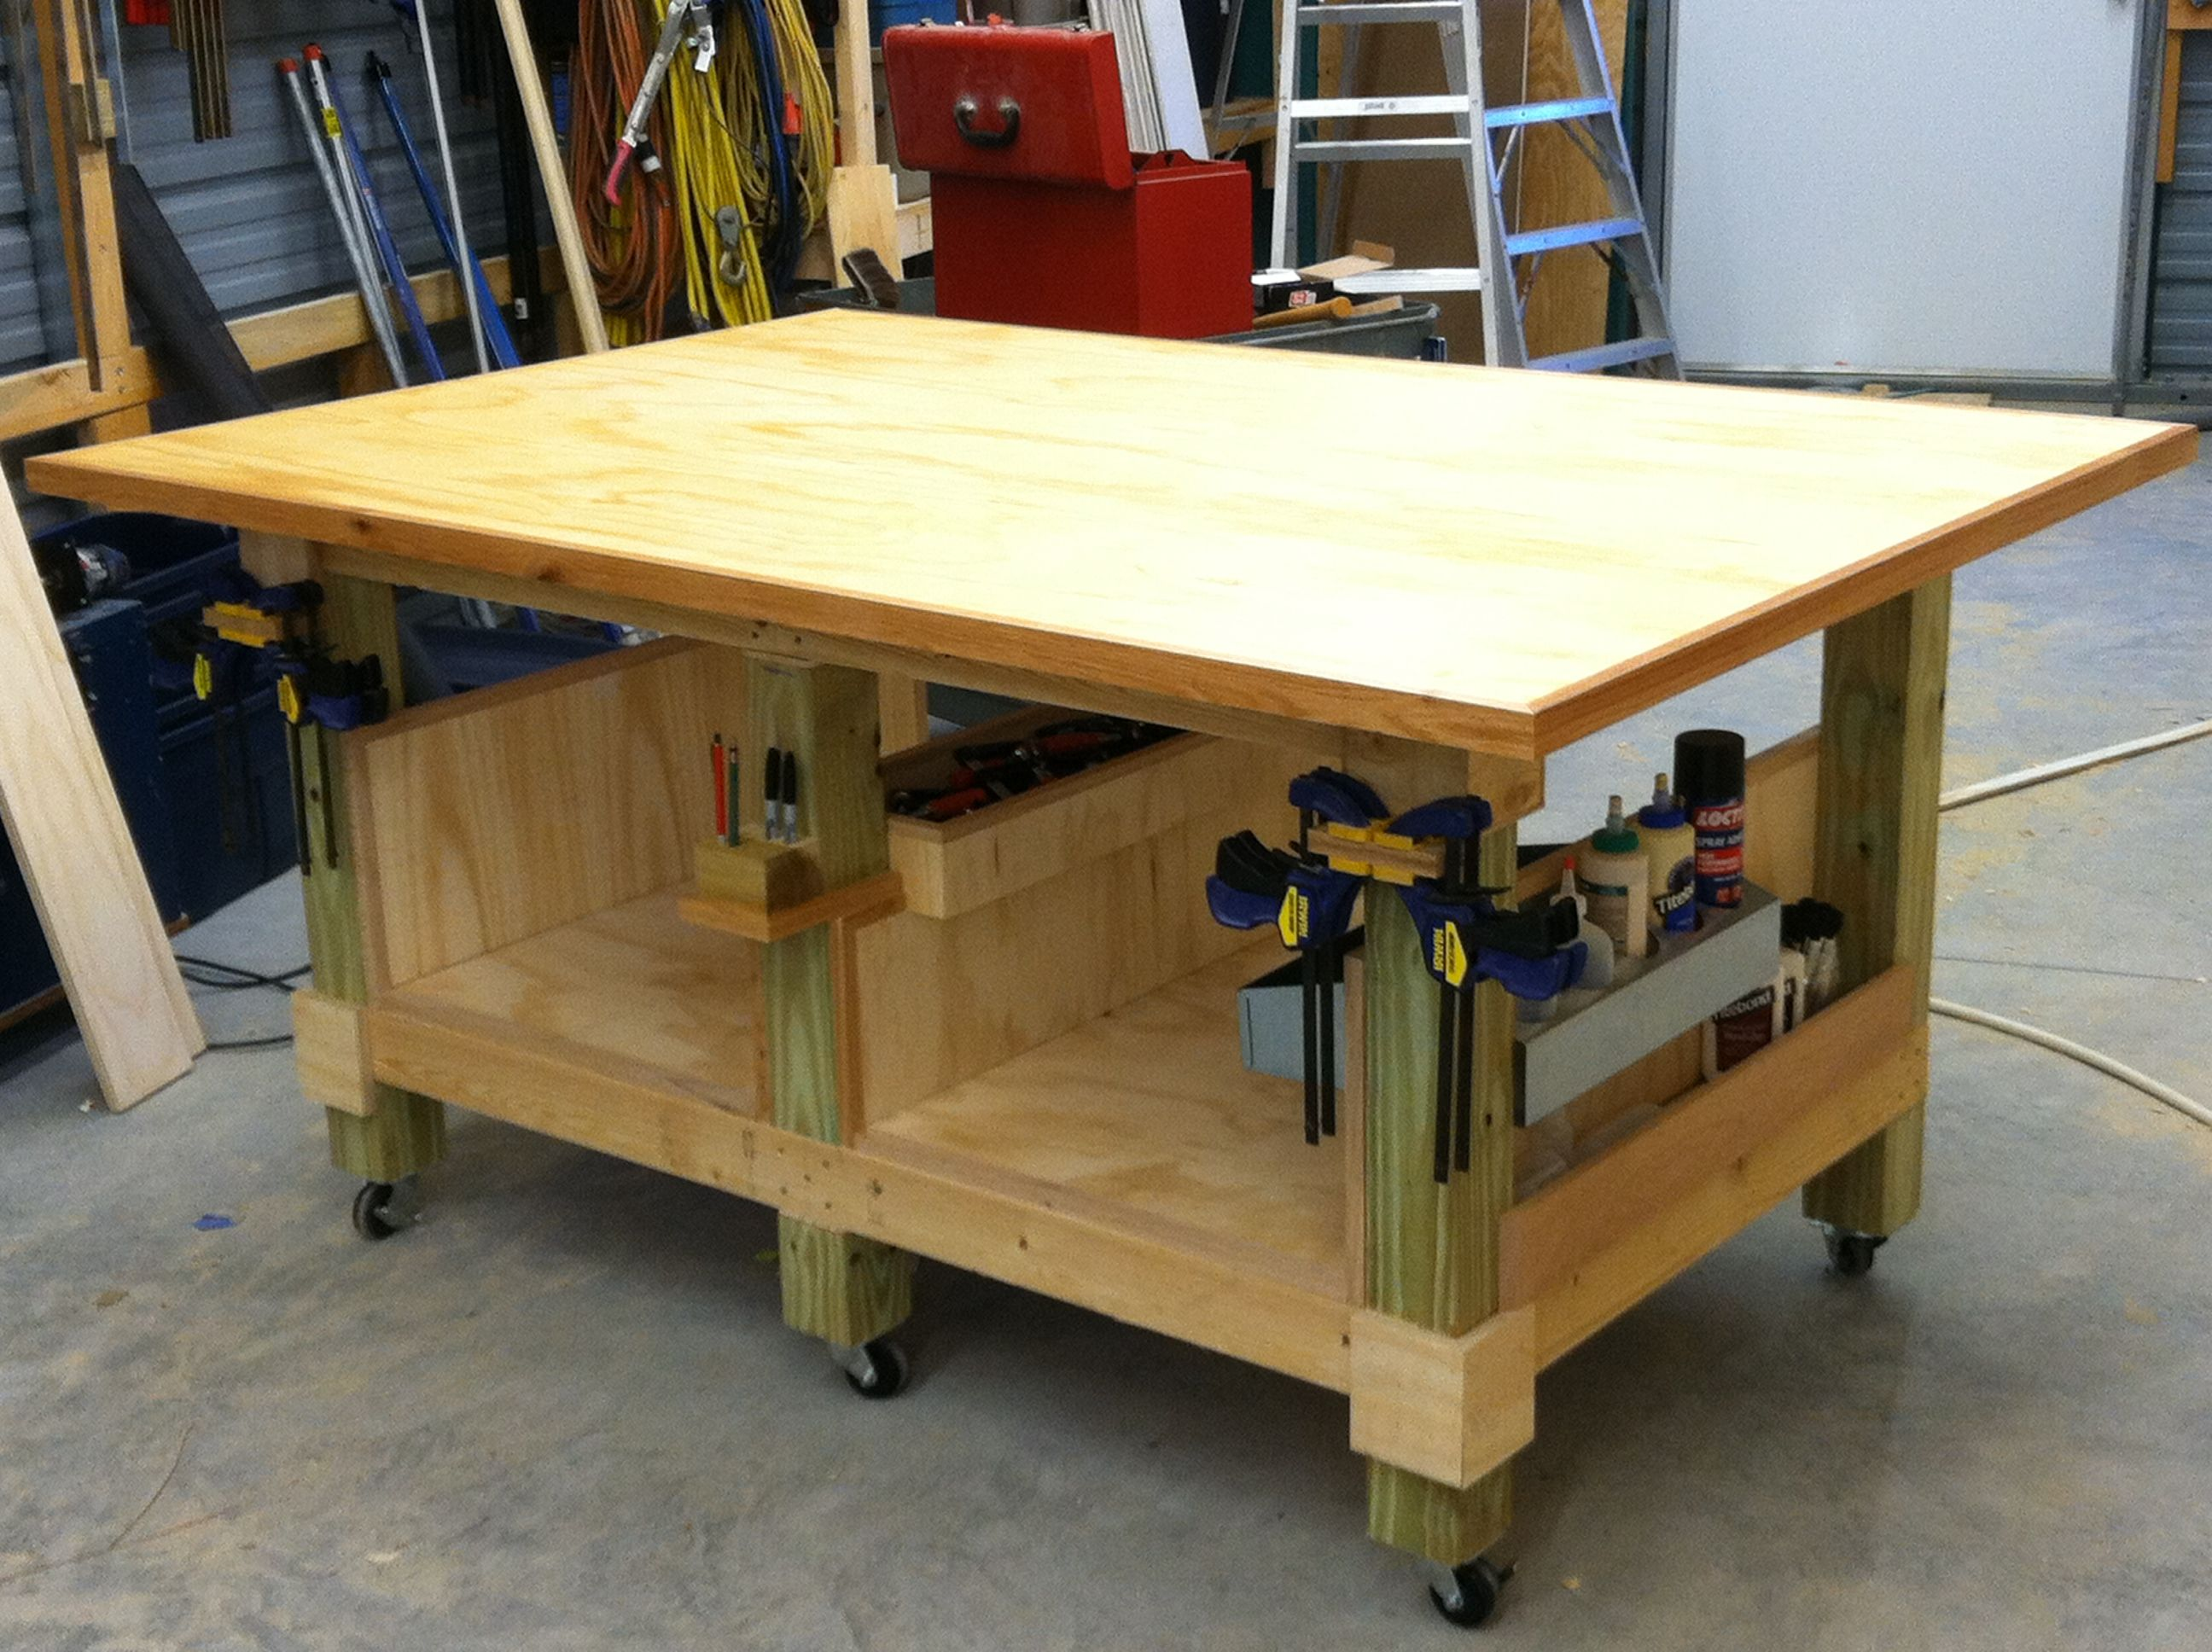 My 4 X 6 Ft Woodworking Assembly Table Six Legs From 4 X 4 Posts Each With Locking Wheels Tabl Woodworking Assembly Table Assembly Table Woodworking Bench